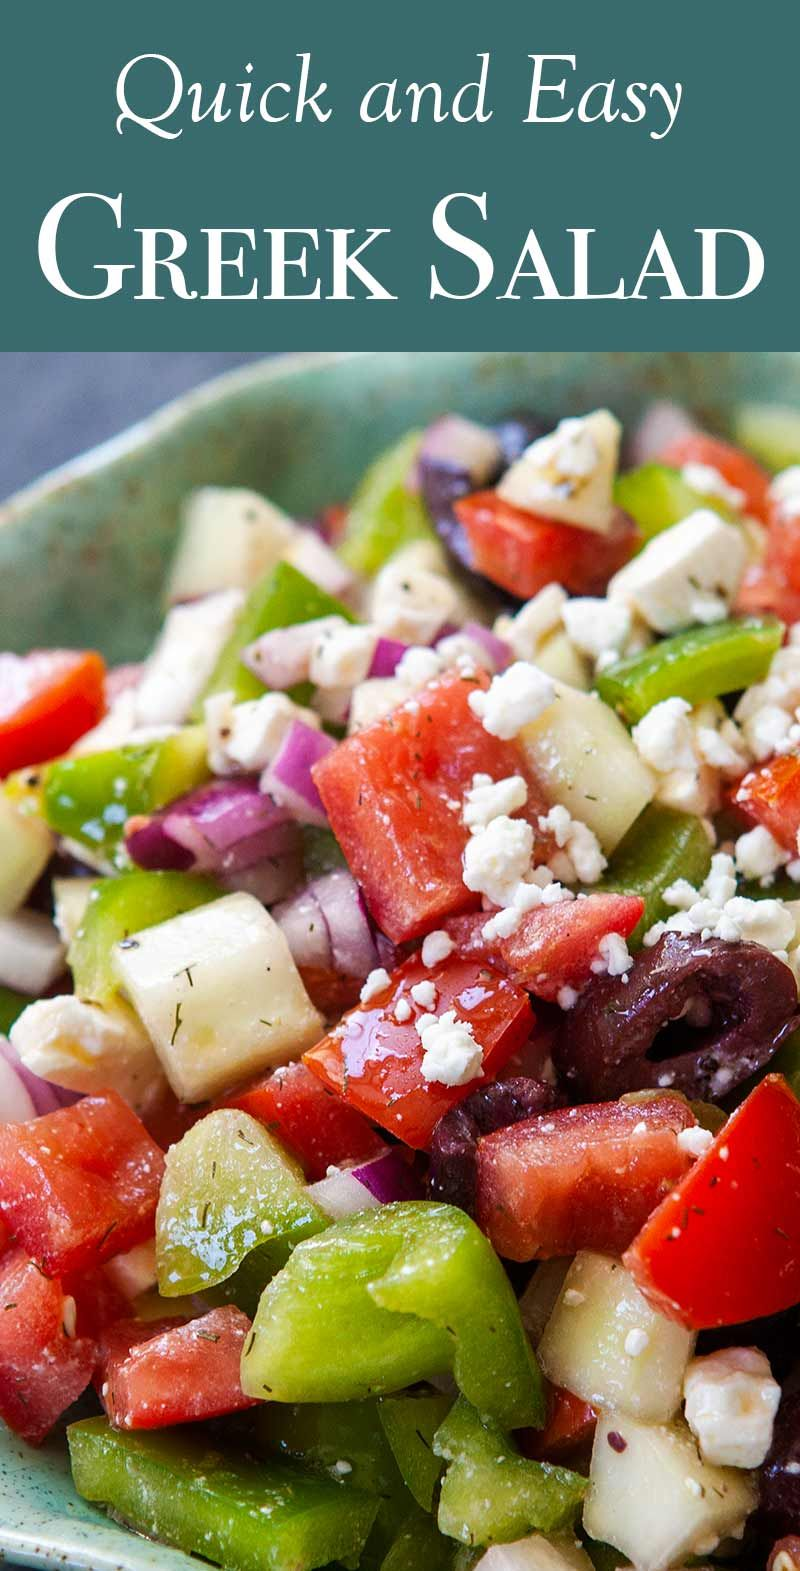 Easy Greek Salad Perfect Summer Recipe Simplyrecipes Com Simplyrecipes Com Recipe Greek Salad Stuffed Peppers Recipes